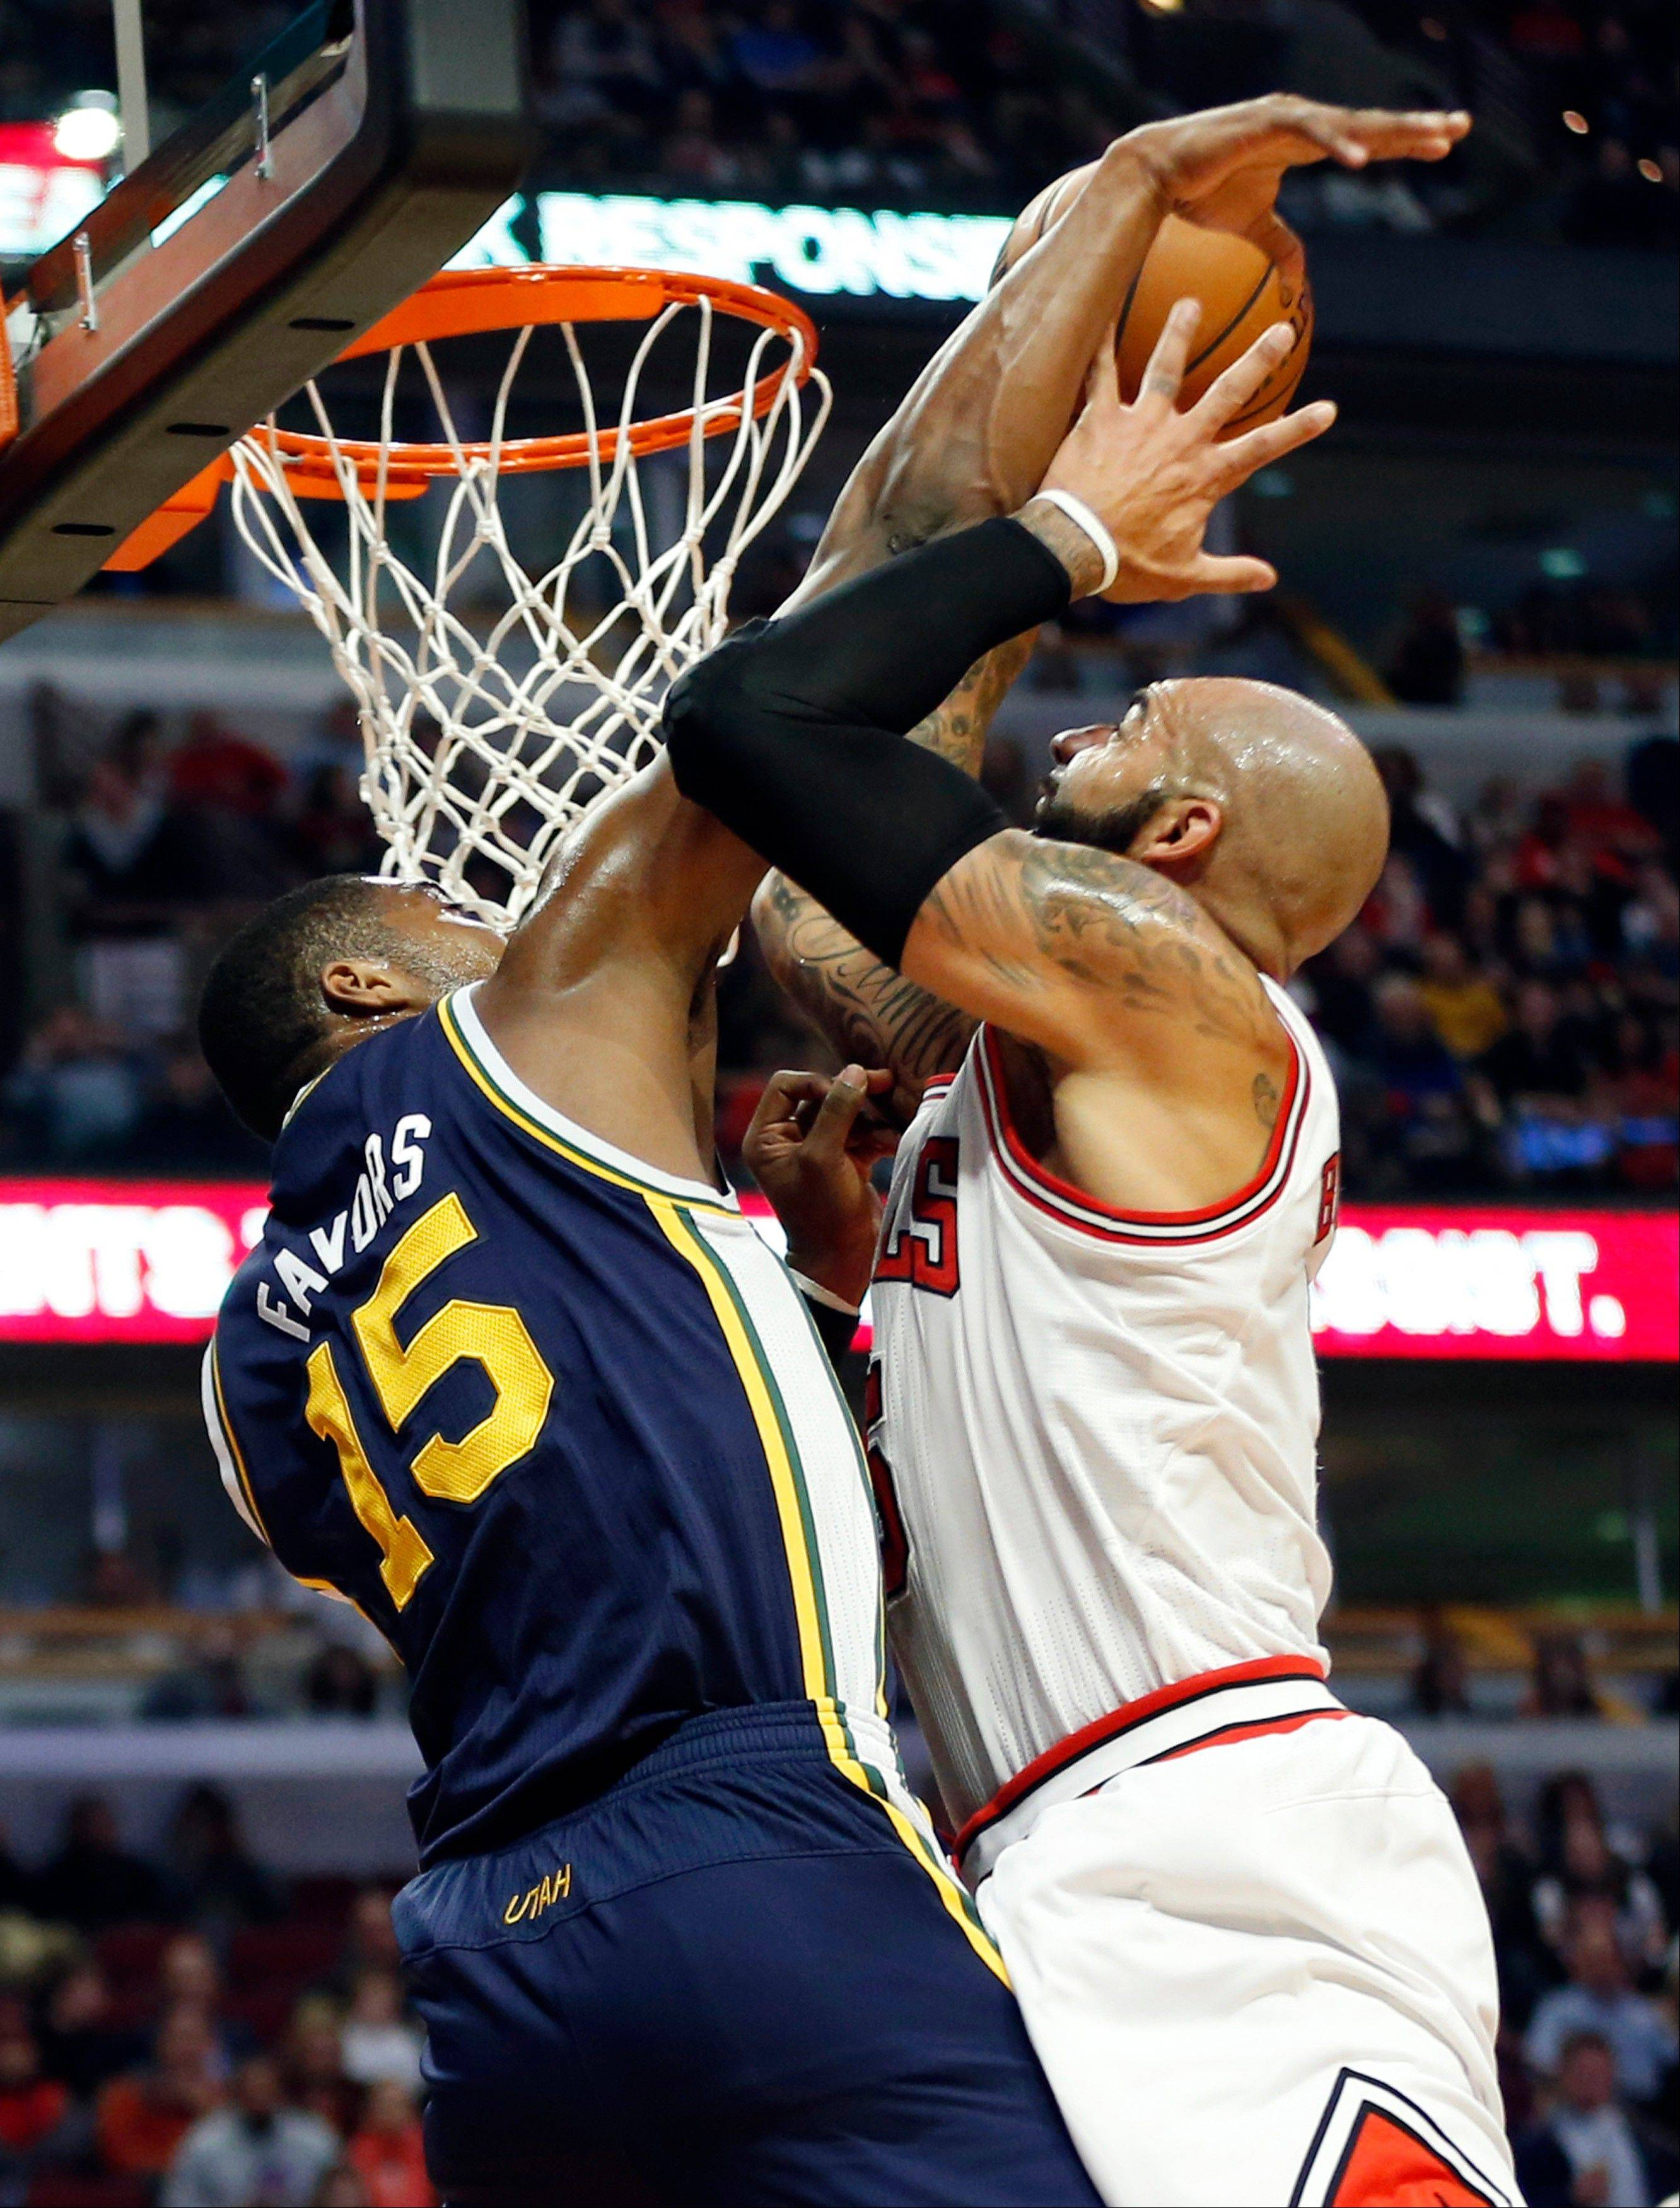 Carlos Boozer, right, goes to the basket against Utah Jazz forward Derrick Favors (15) during the first quarter of an NBA basketball game in Chicago, Friday, Nov. 8, 2013.